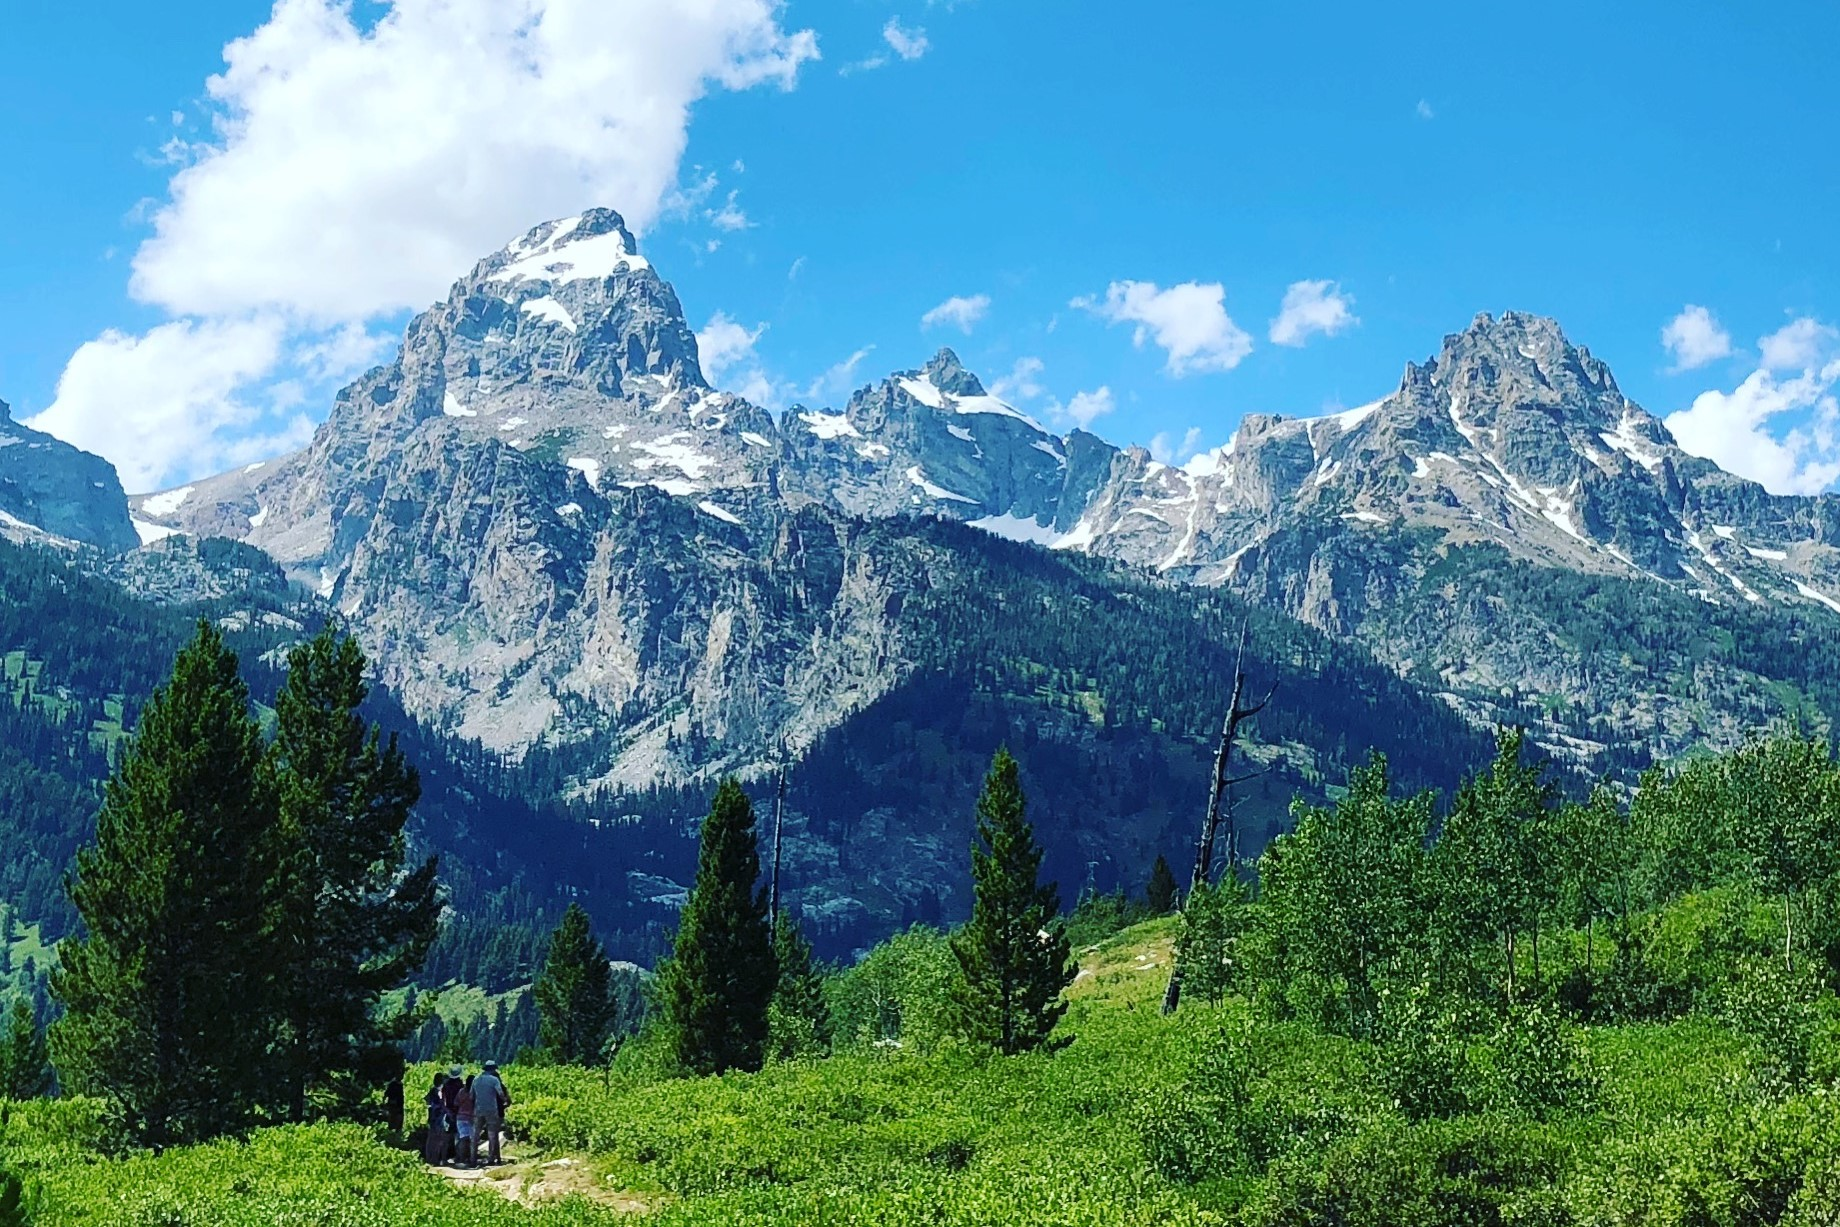 A trail, surrounded by green shrubs and trees, under the Tetons on a sunny day